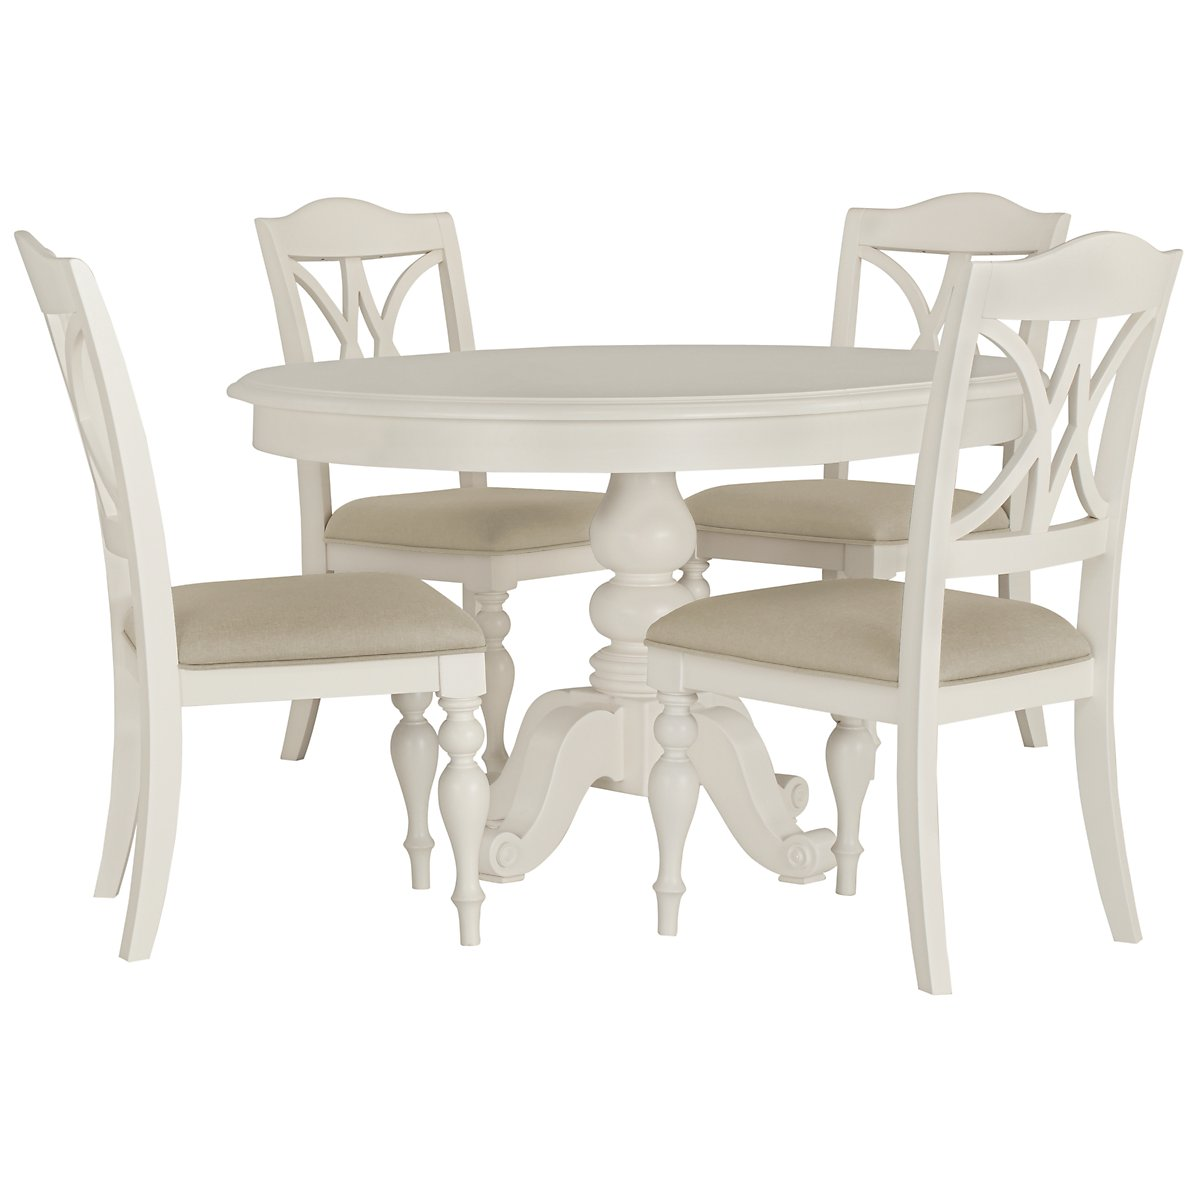 City Furniture Quinn White Round Table Amp 4 Wood Chairs